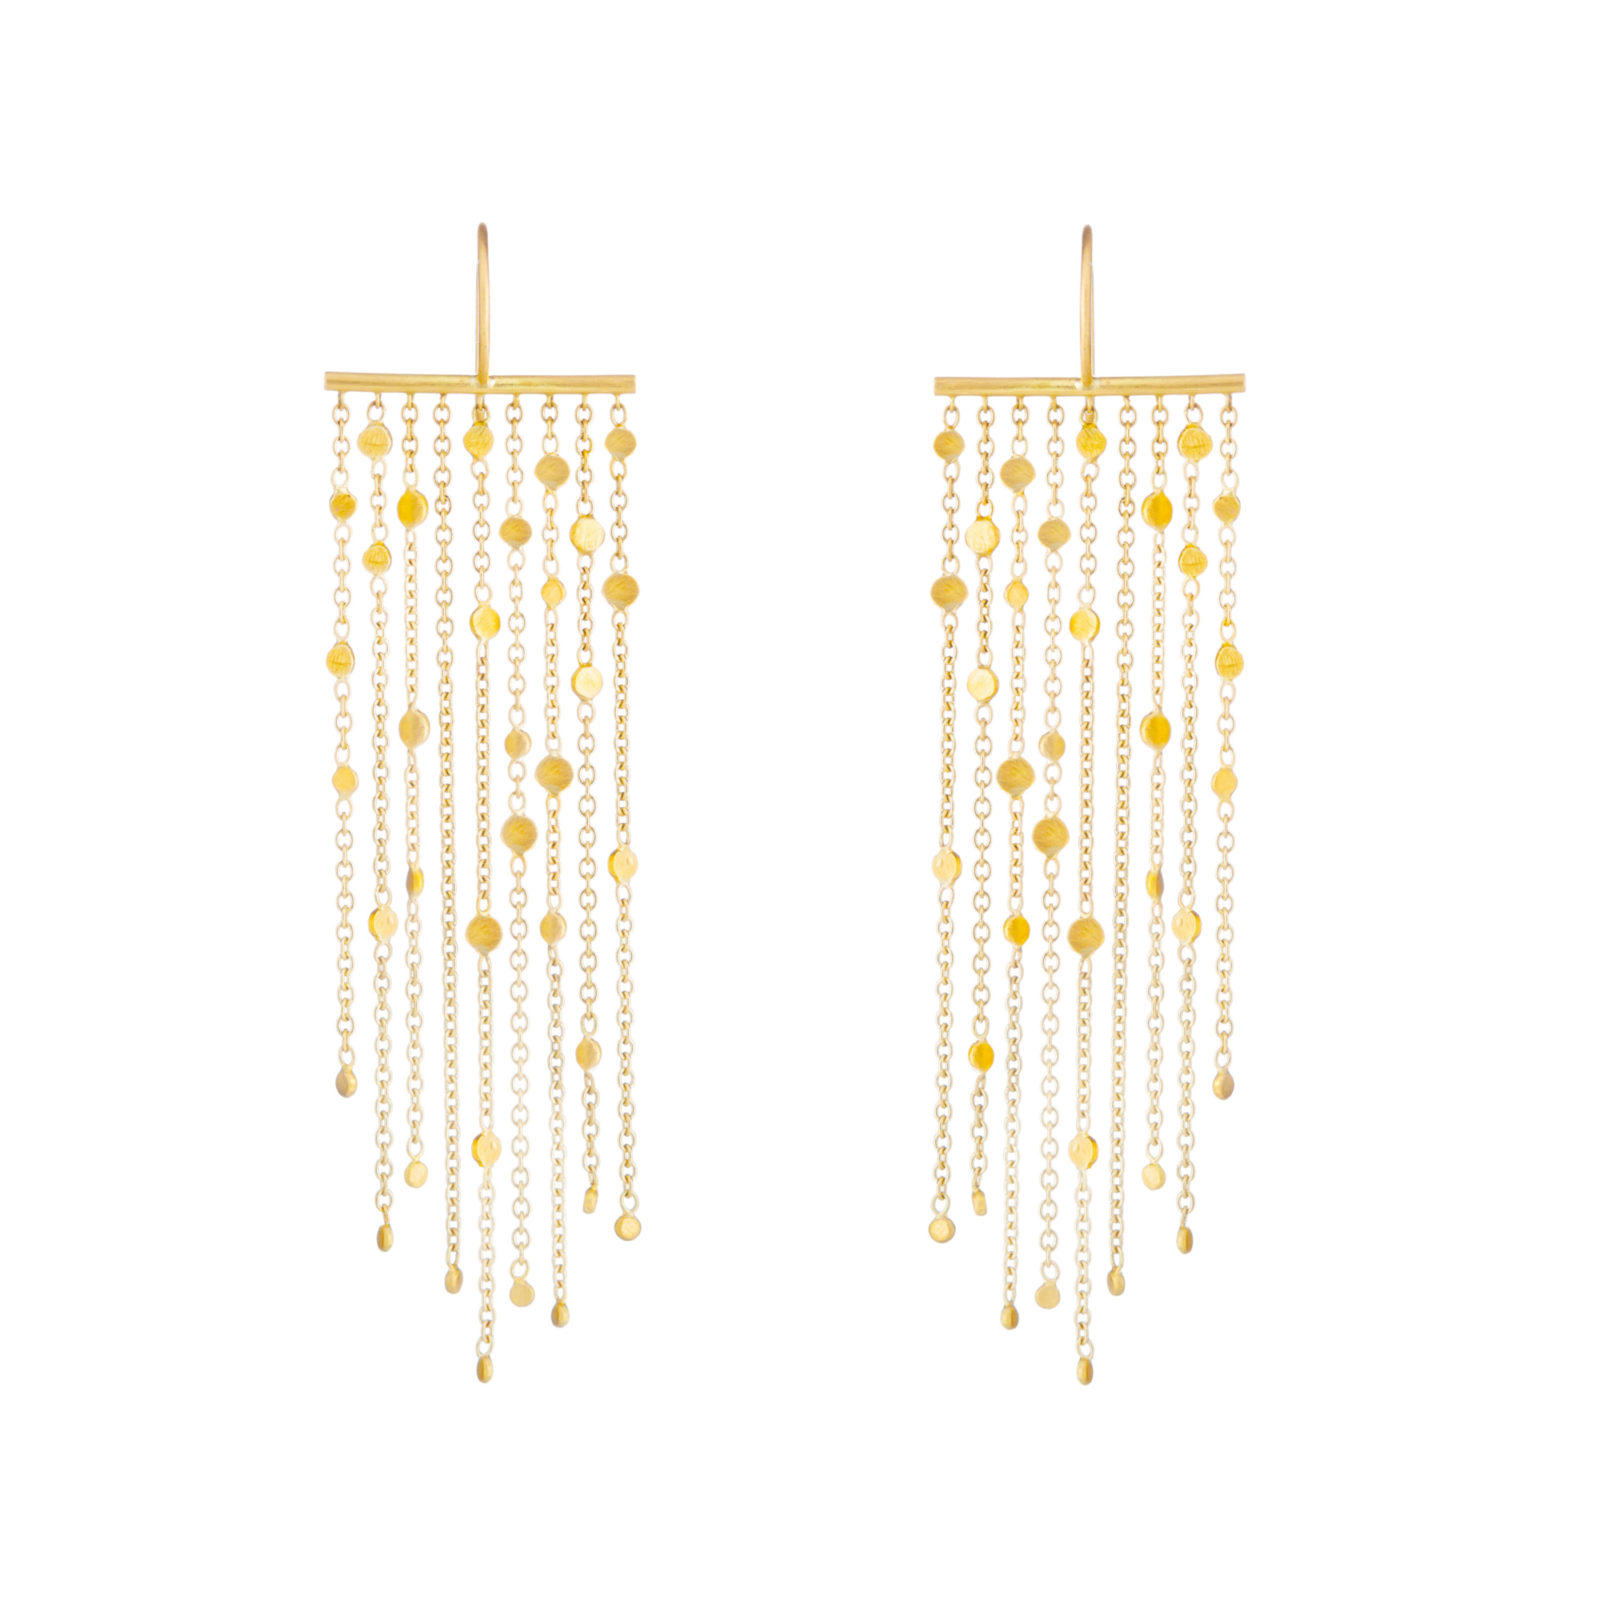 Sia Taylor SE1 Y Yellow Gold Falling Dust 9 Strand Earring WB